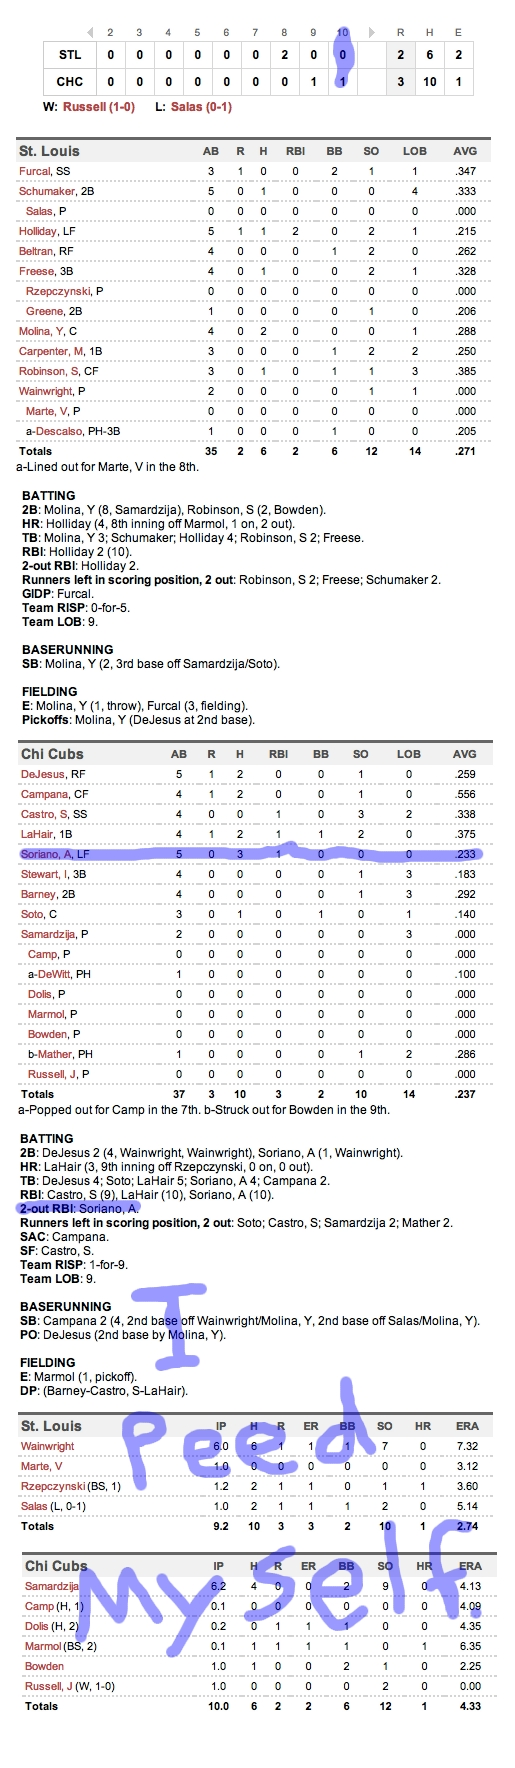 Enhanced Box Score: Cardinals 2, Cubs 3 – April 24, 2012